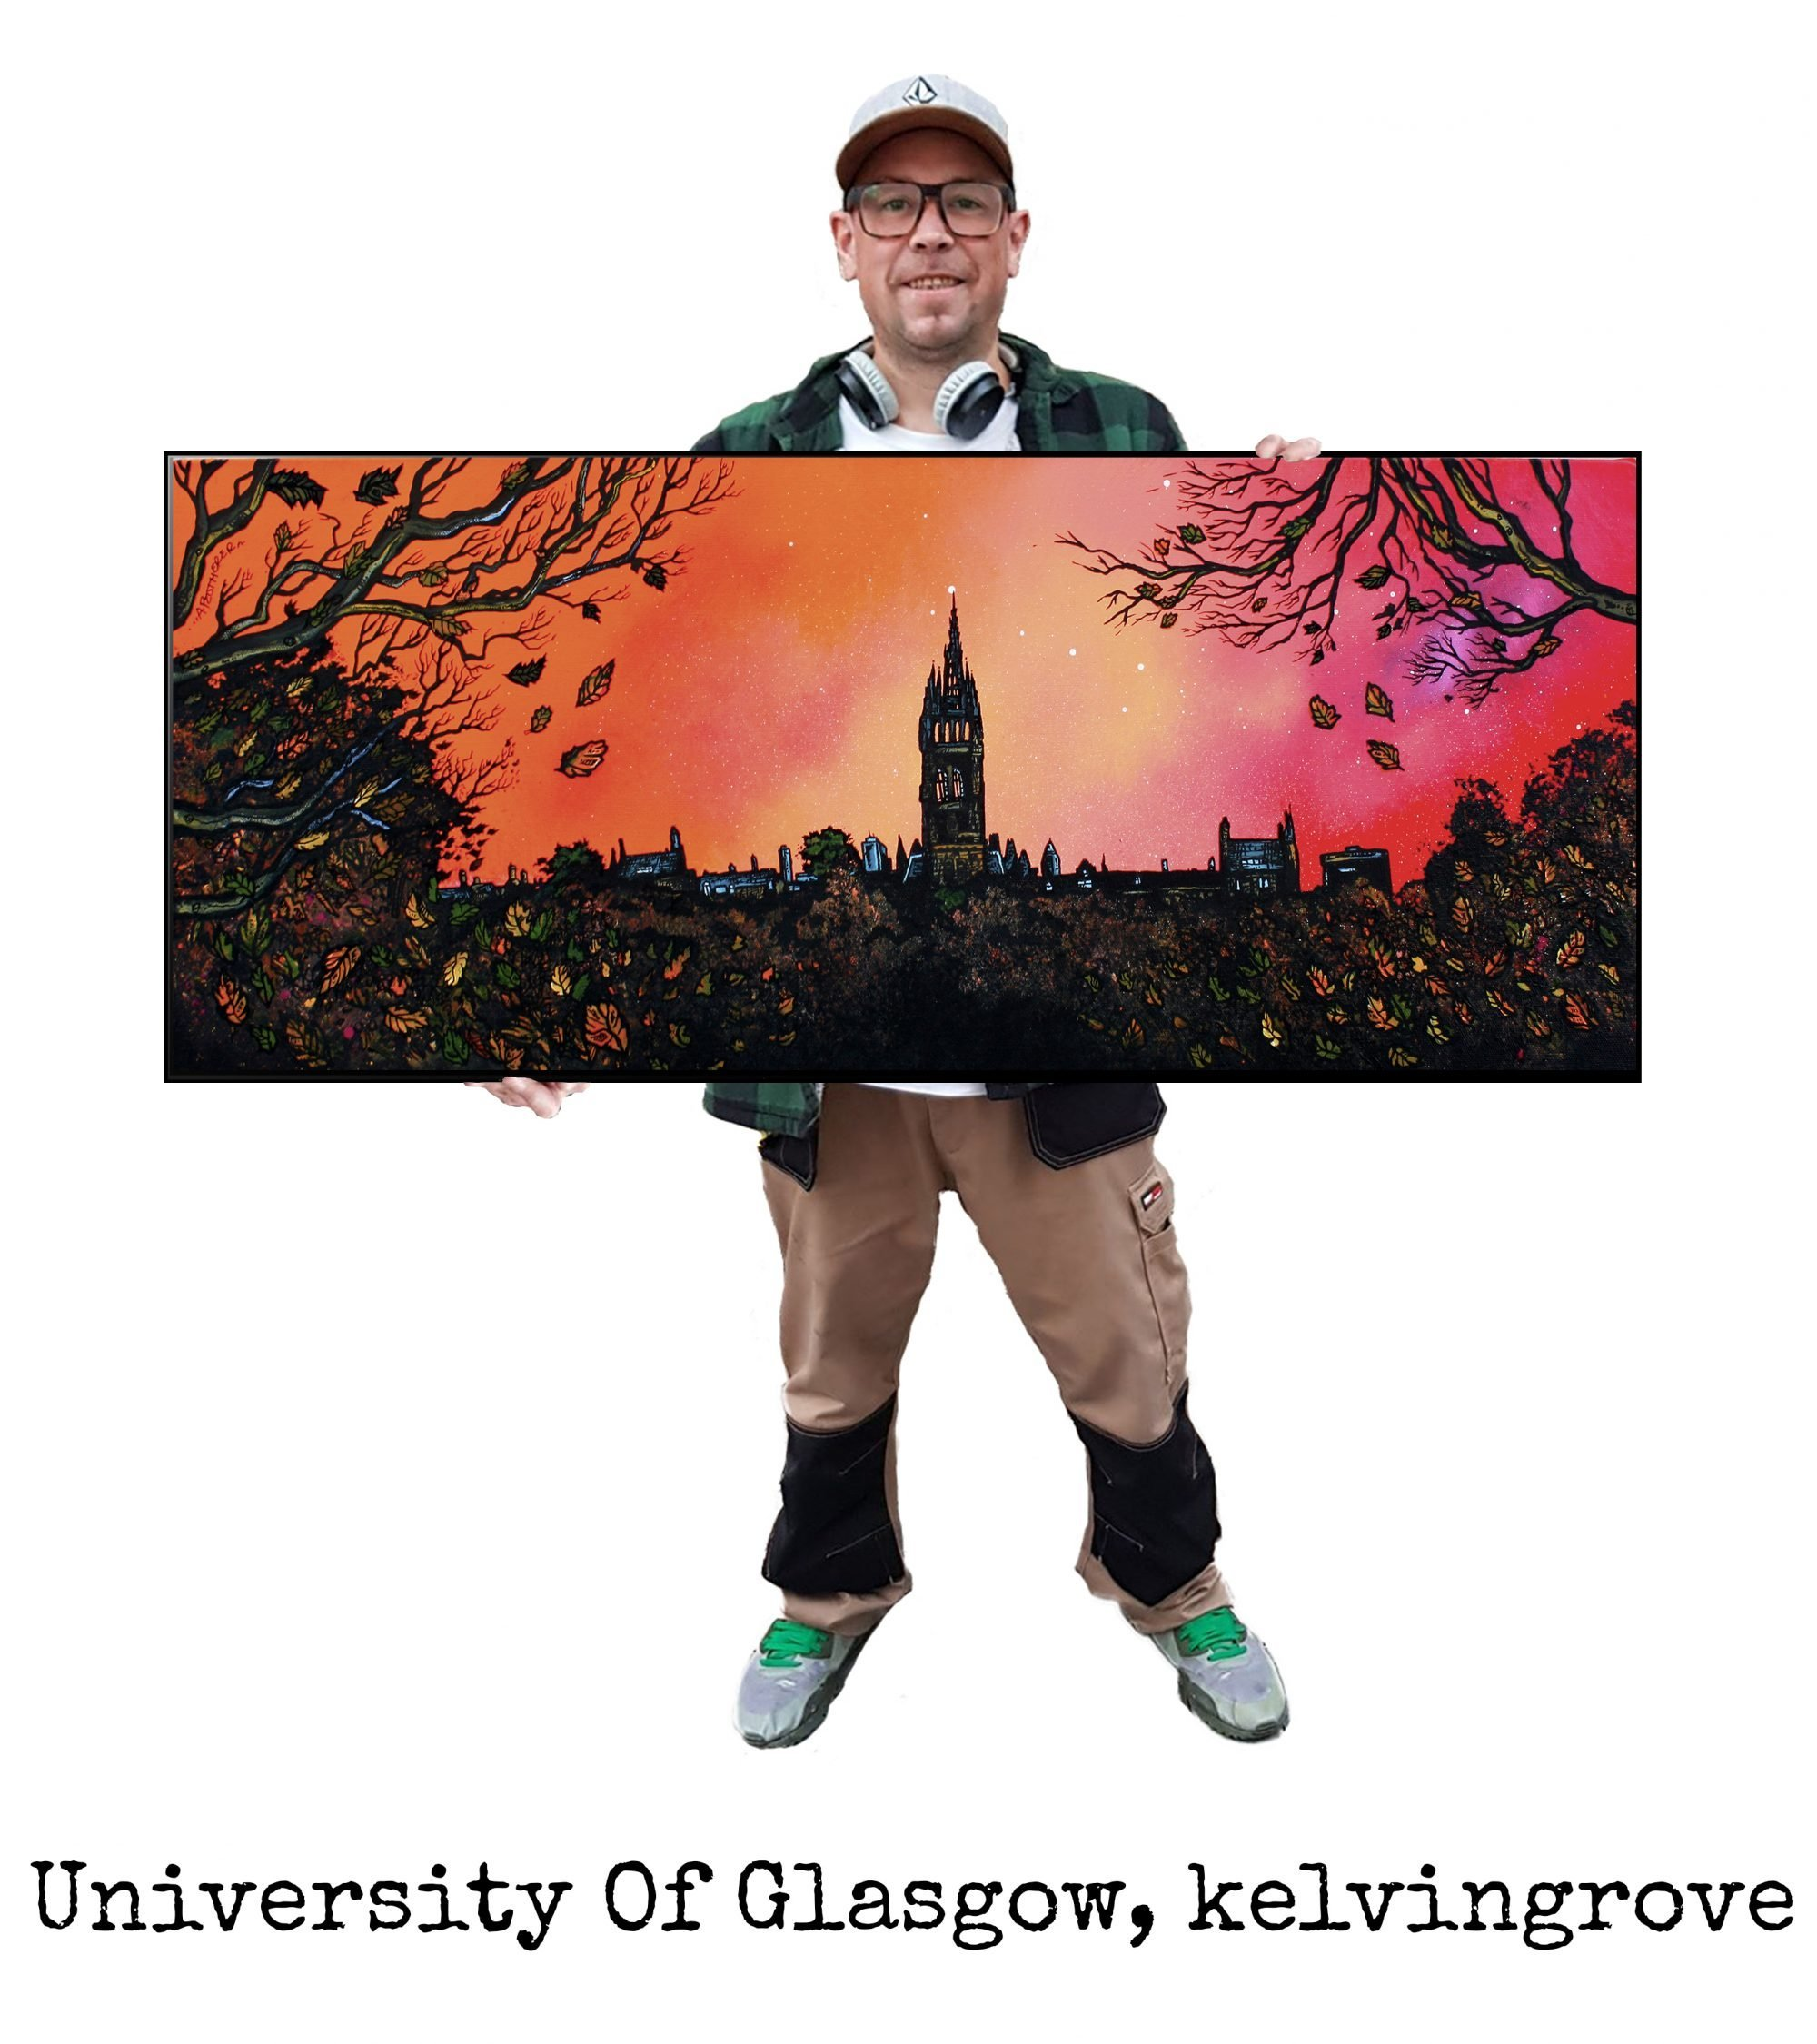 Glasgow University - Original Painting & Various Print Formats